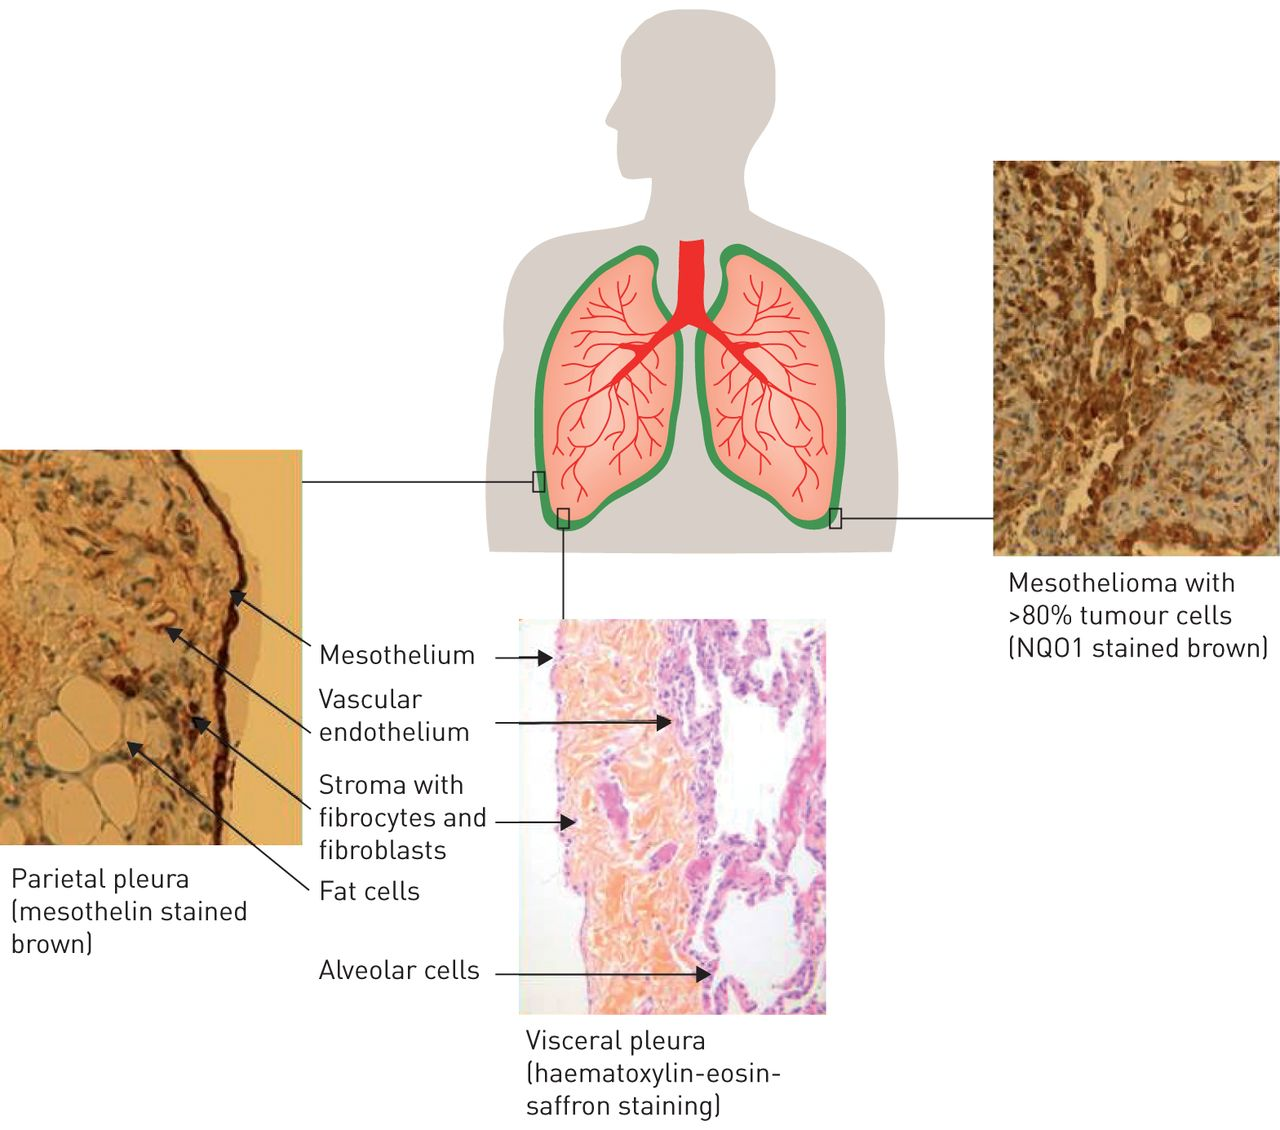 Anatomy Physiology Lecture Notes Muscles Muscle Tissue moreover Ohhaitrish wordpress further 1826582 likewise Stock Illustration Pneumonia Lungs Inflammatory Condition Anatomy Detailed View Image41622139 together with Anatomy Of The Heart. on membrane layers of the heart